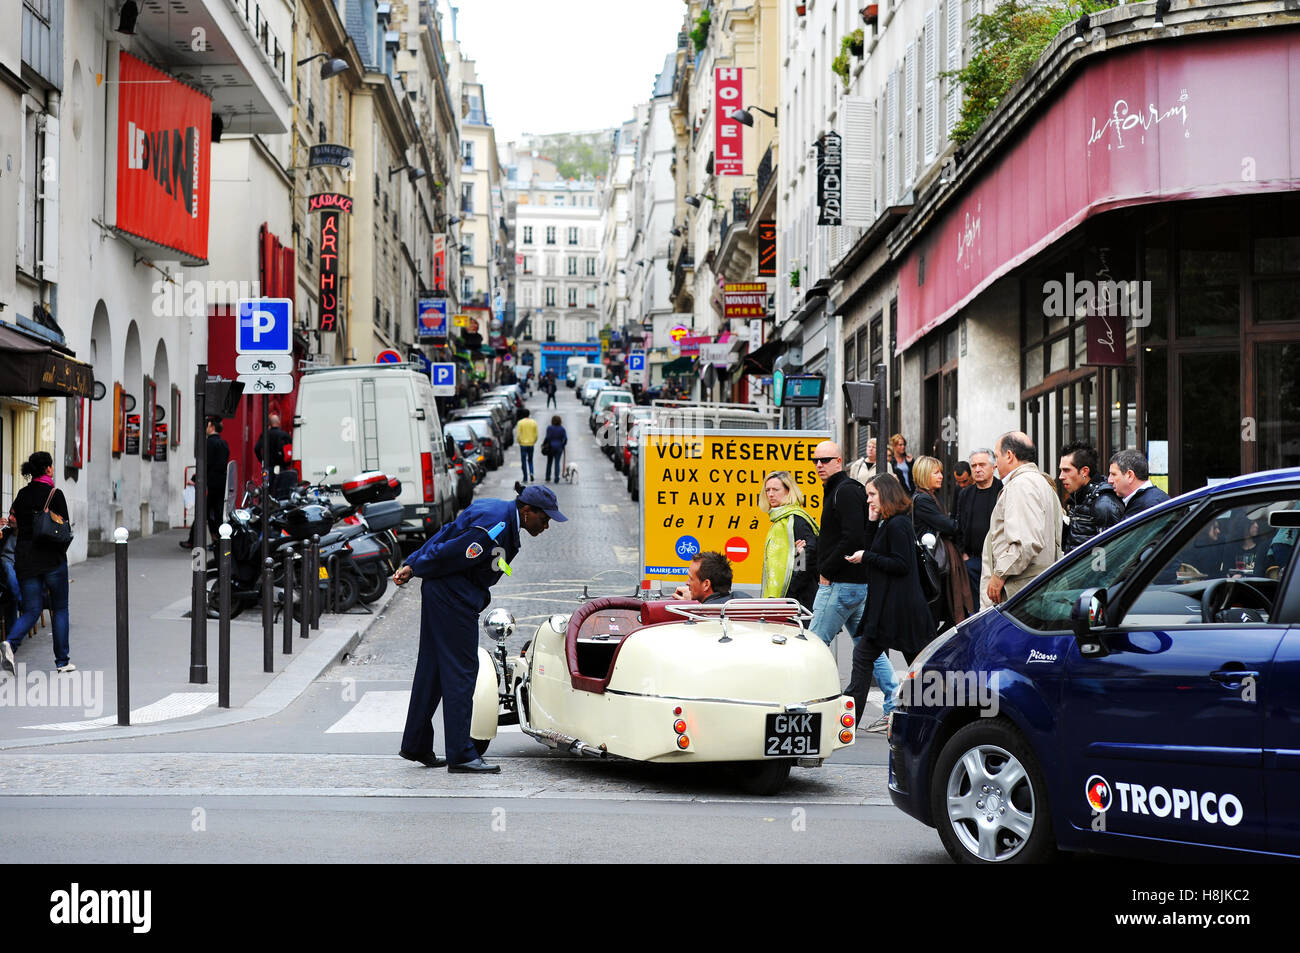 Rue des Martyrs turned in pedestrian street on sundays, Paris 18 th, France - Stock Image